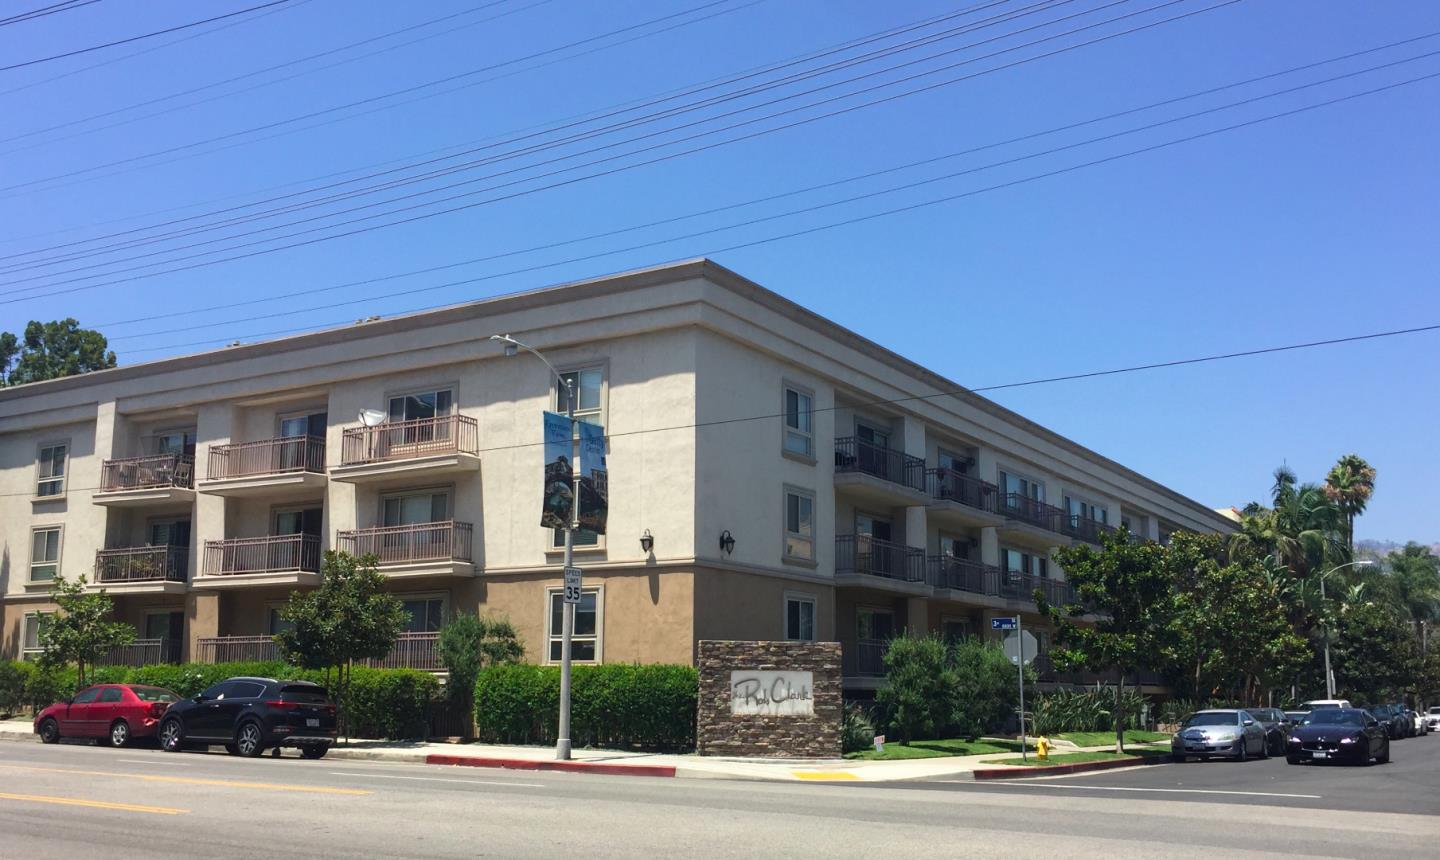 Condominium for Sale at 141 S Clark Drive 141 S Clark Drive West Hollywood, California 90048 United States